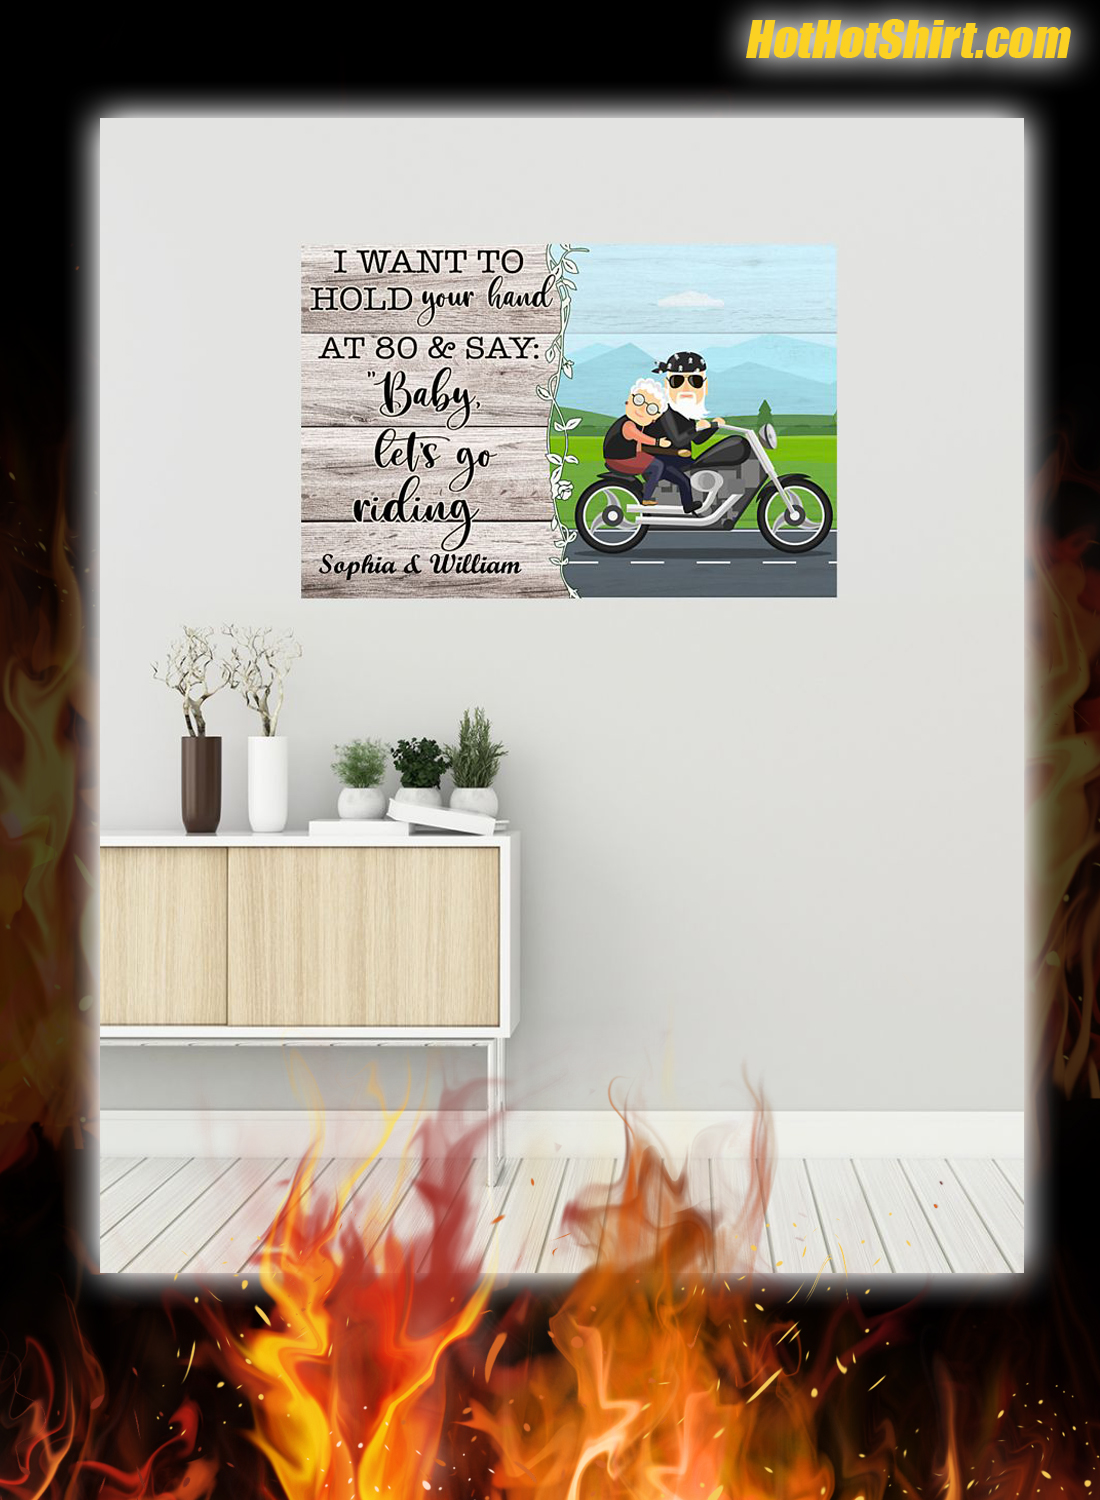 Personalized I Want To Hold Your Hand At 80 And Say Baby Let Go Riding Poster 1